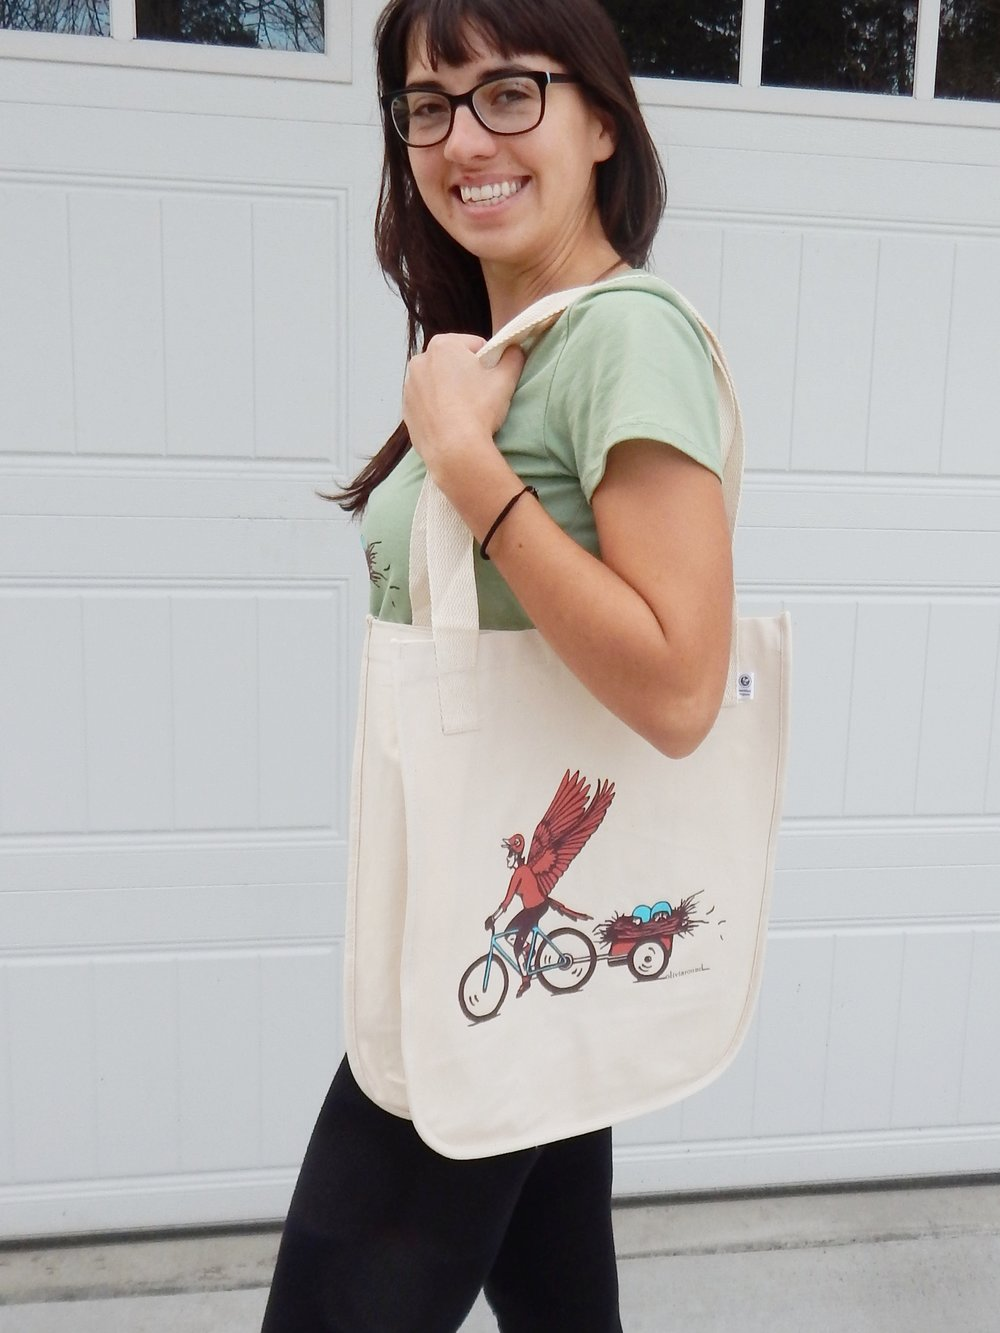 If you'd still like to order a shirt or bag, just head on over to my Etsy site: Olivia Round on Etsy.  -